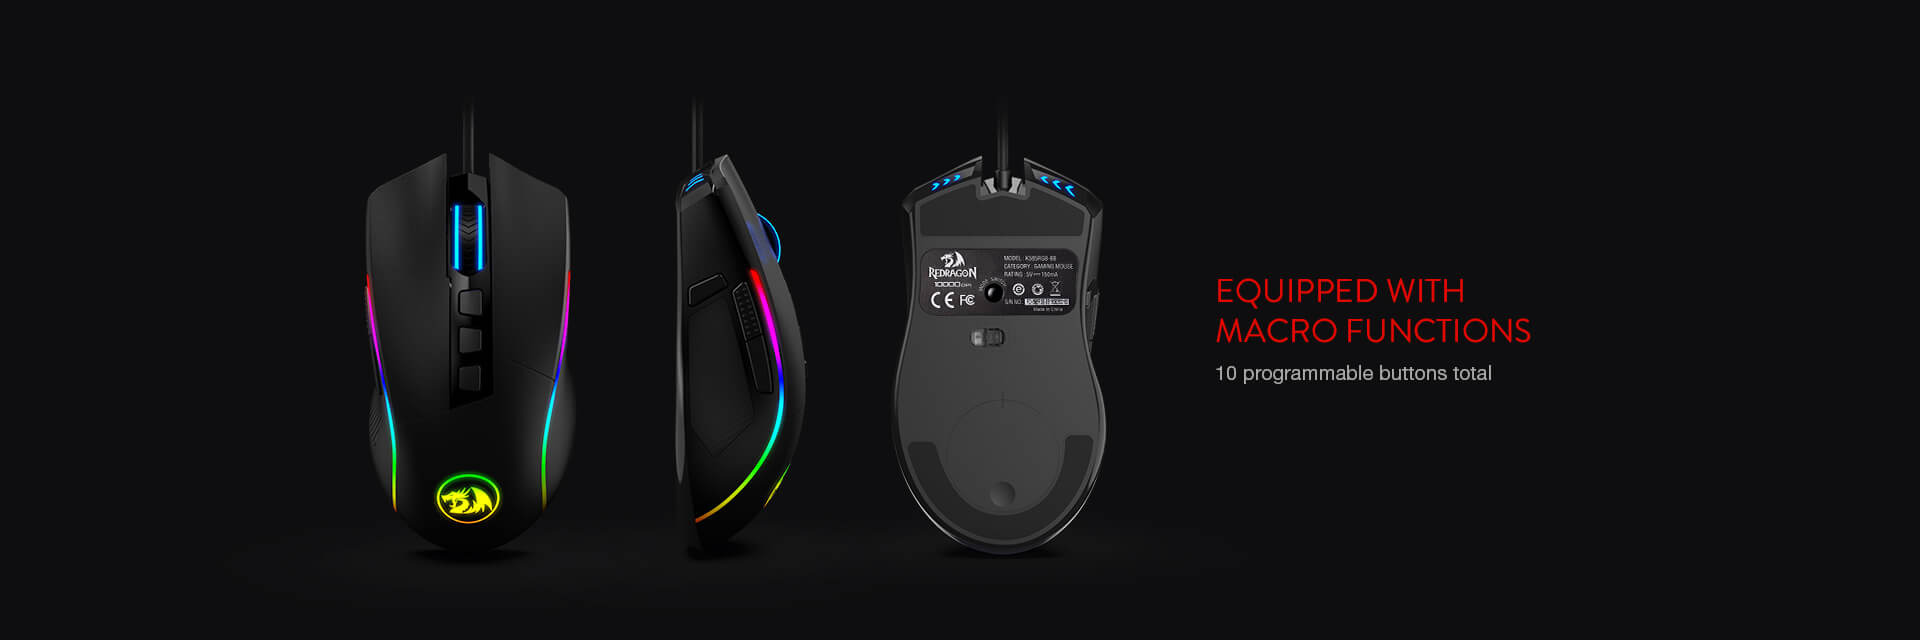 redragon mouse